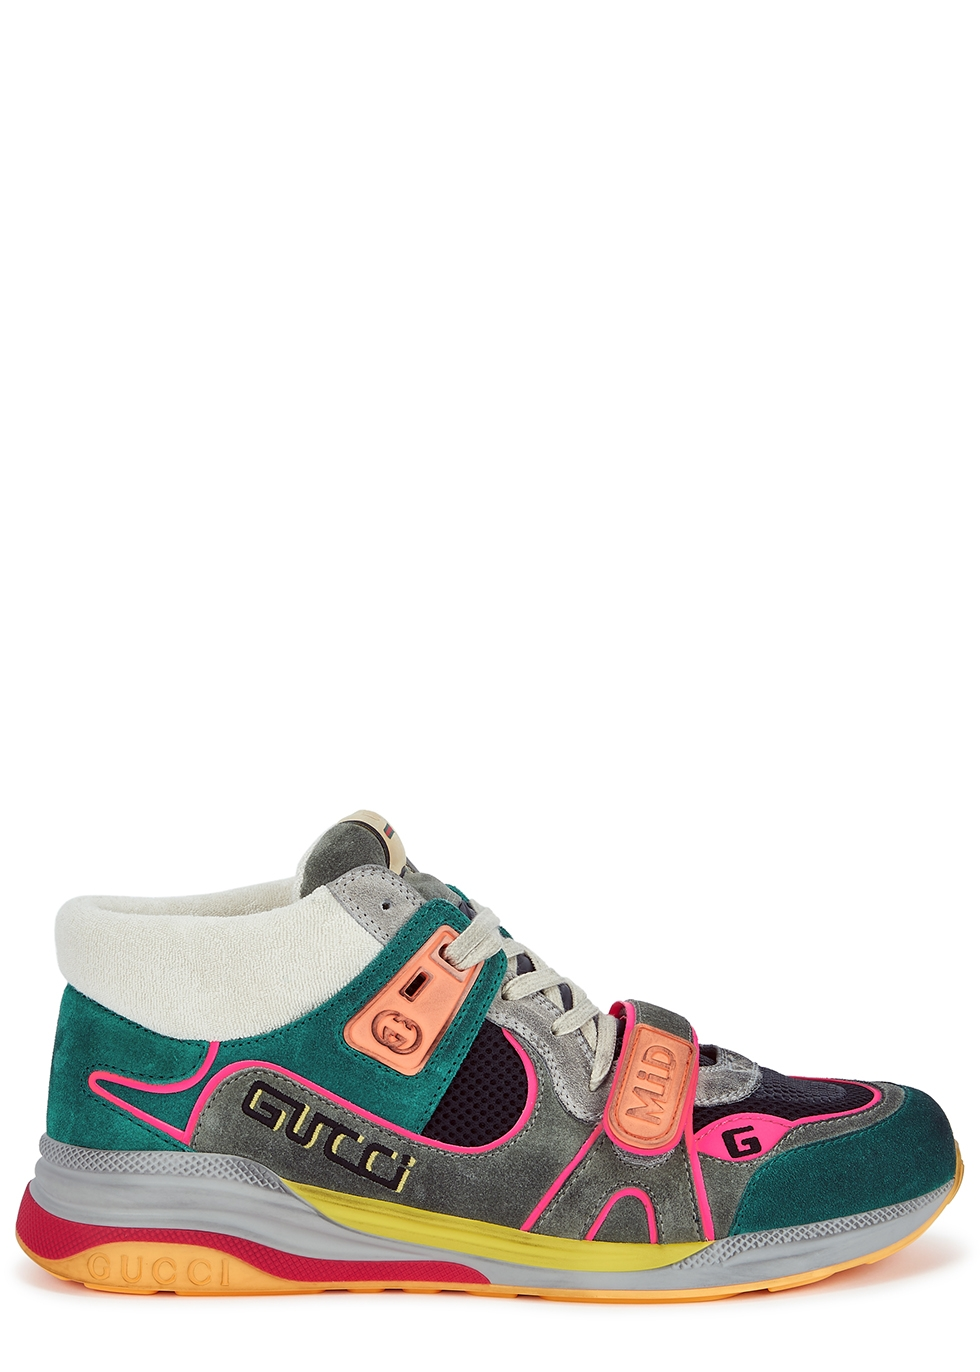 Ultrapace panelled suede sneakers